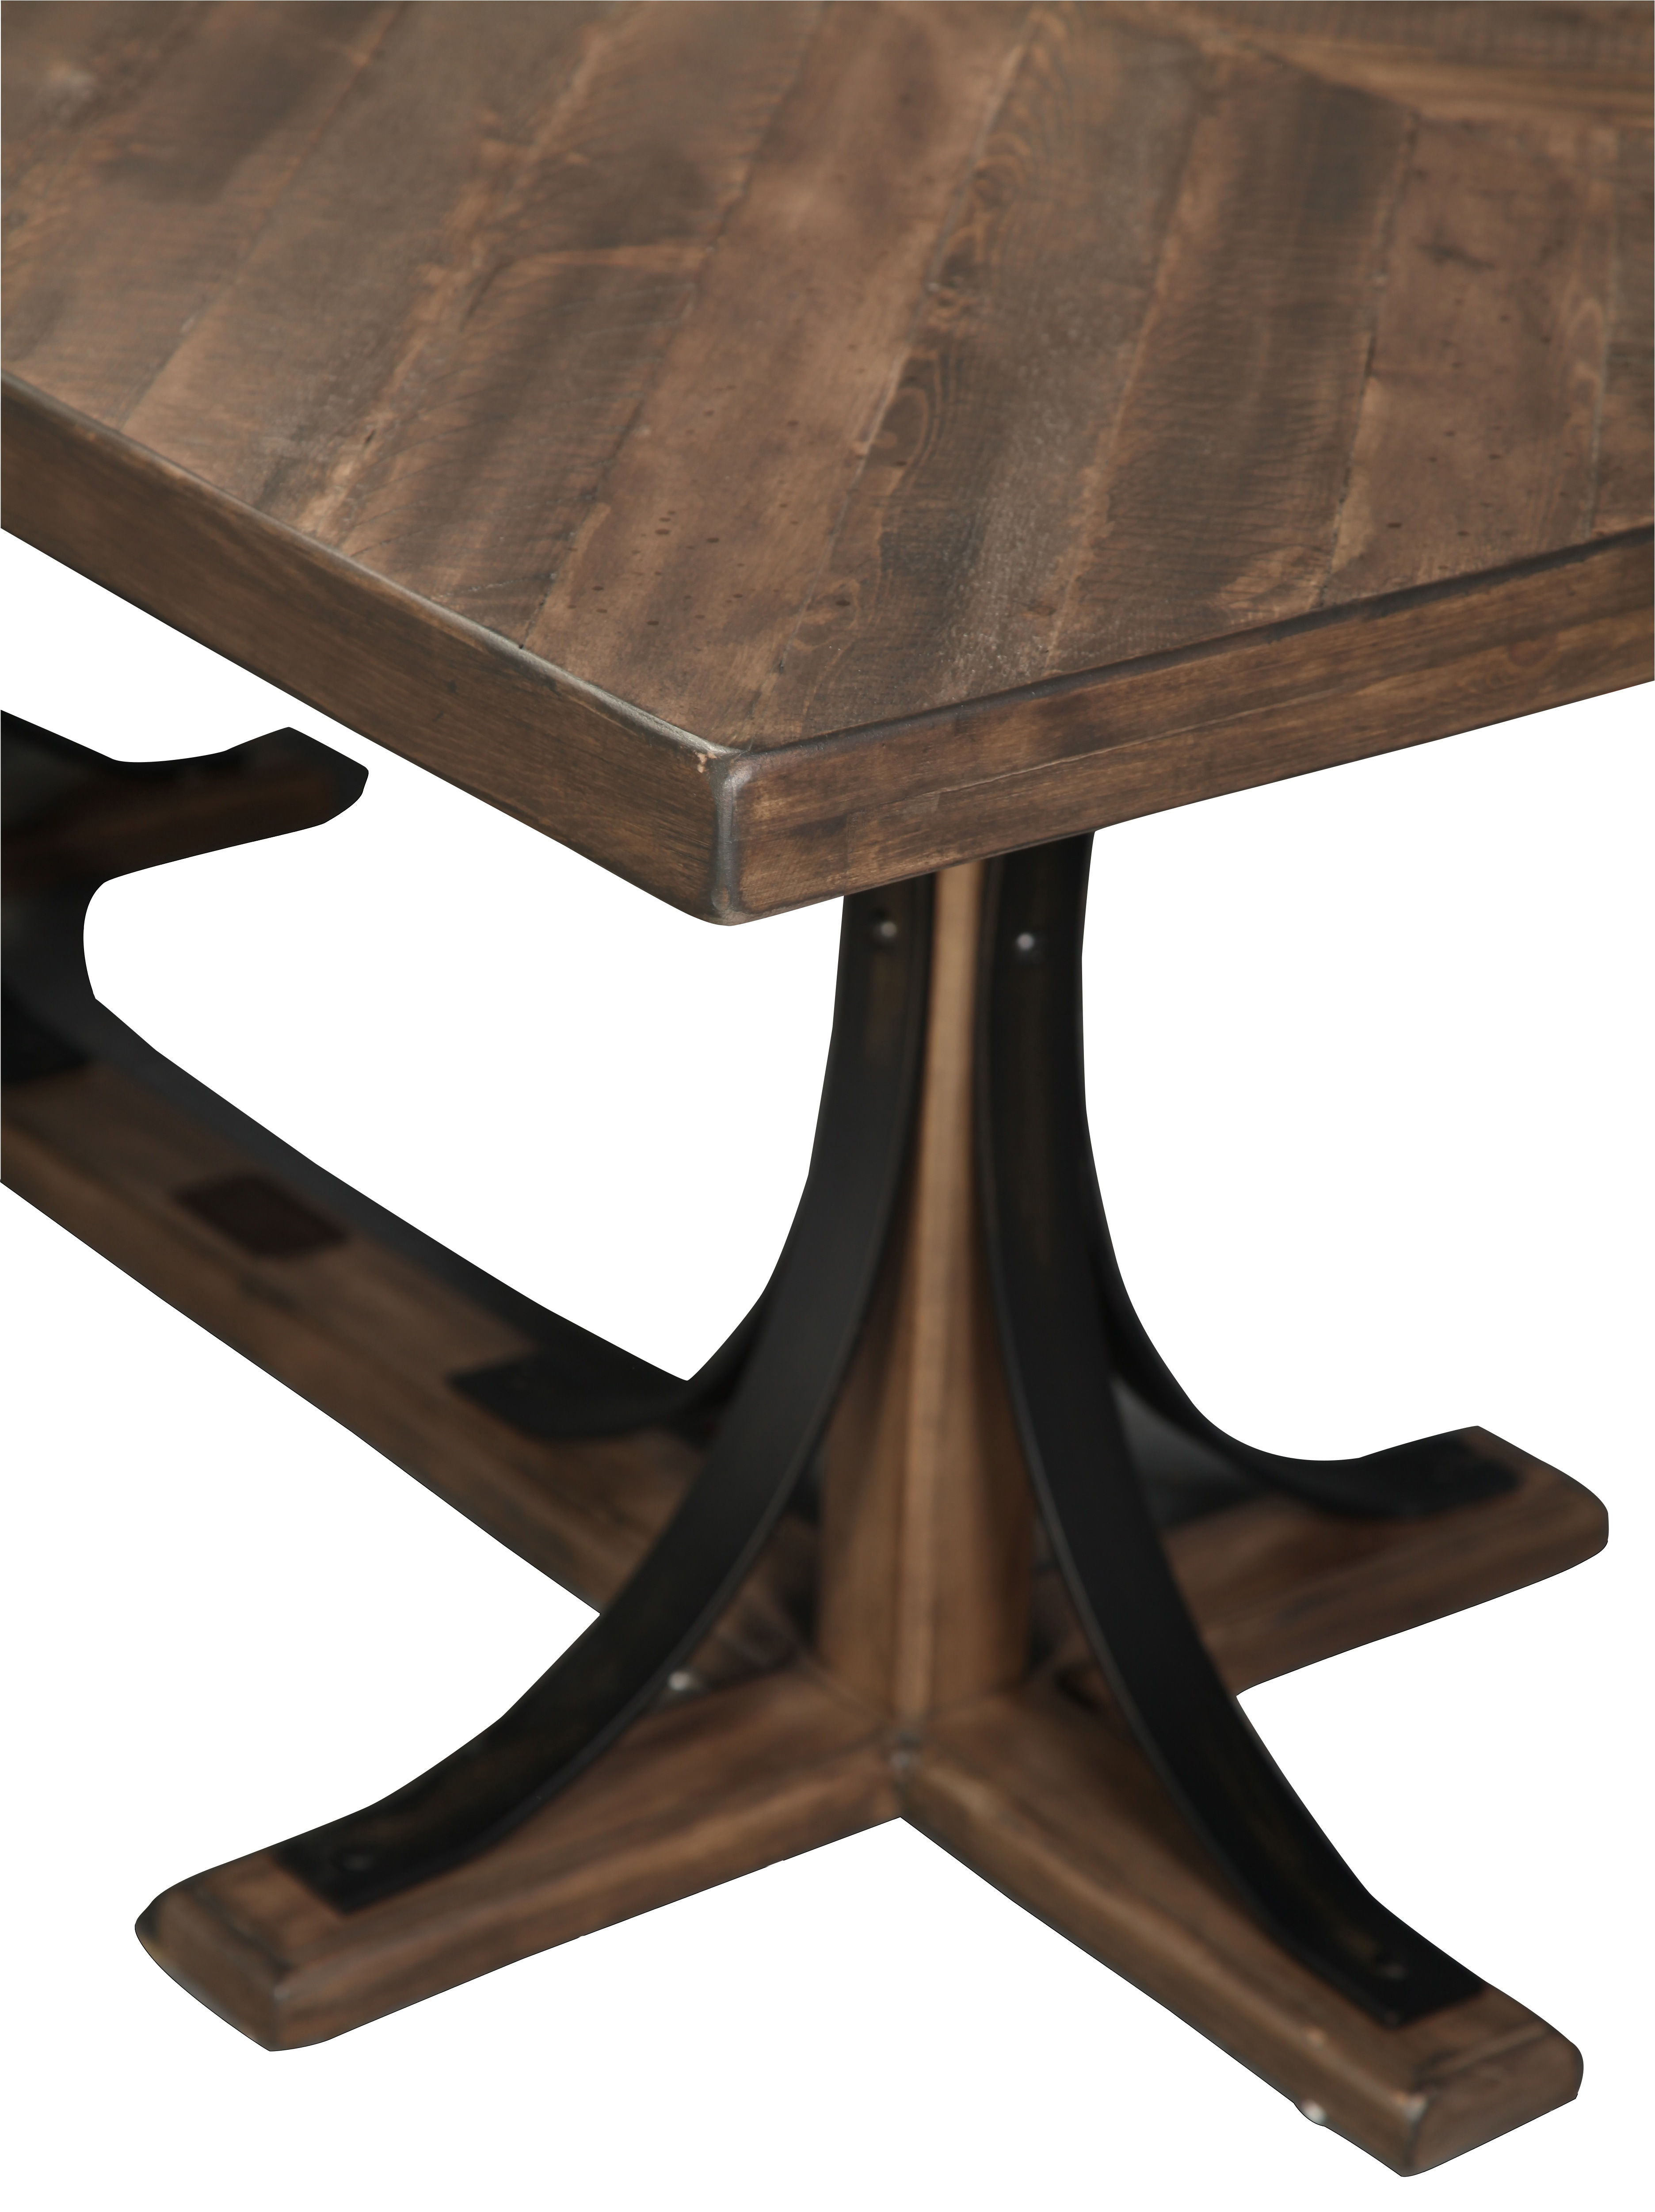 Widely Used Magnolia Home Iron Trestle Cocktail Tables Throughout Magnolia Home Traditional Iron Trestle Table (Gallery 4 of 20)